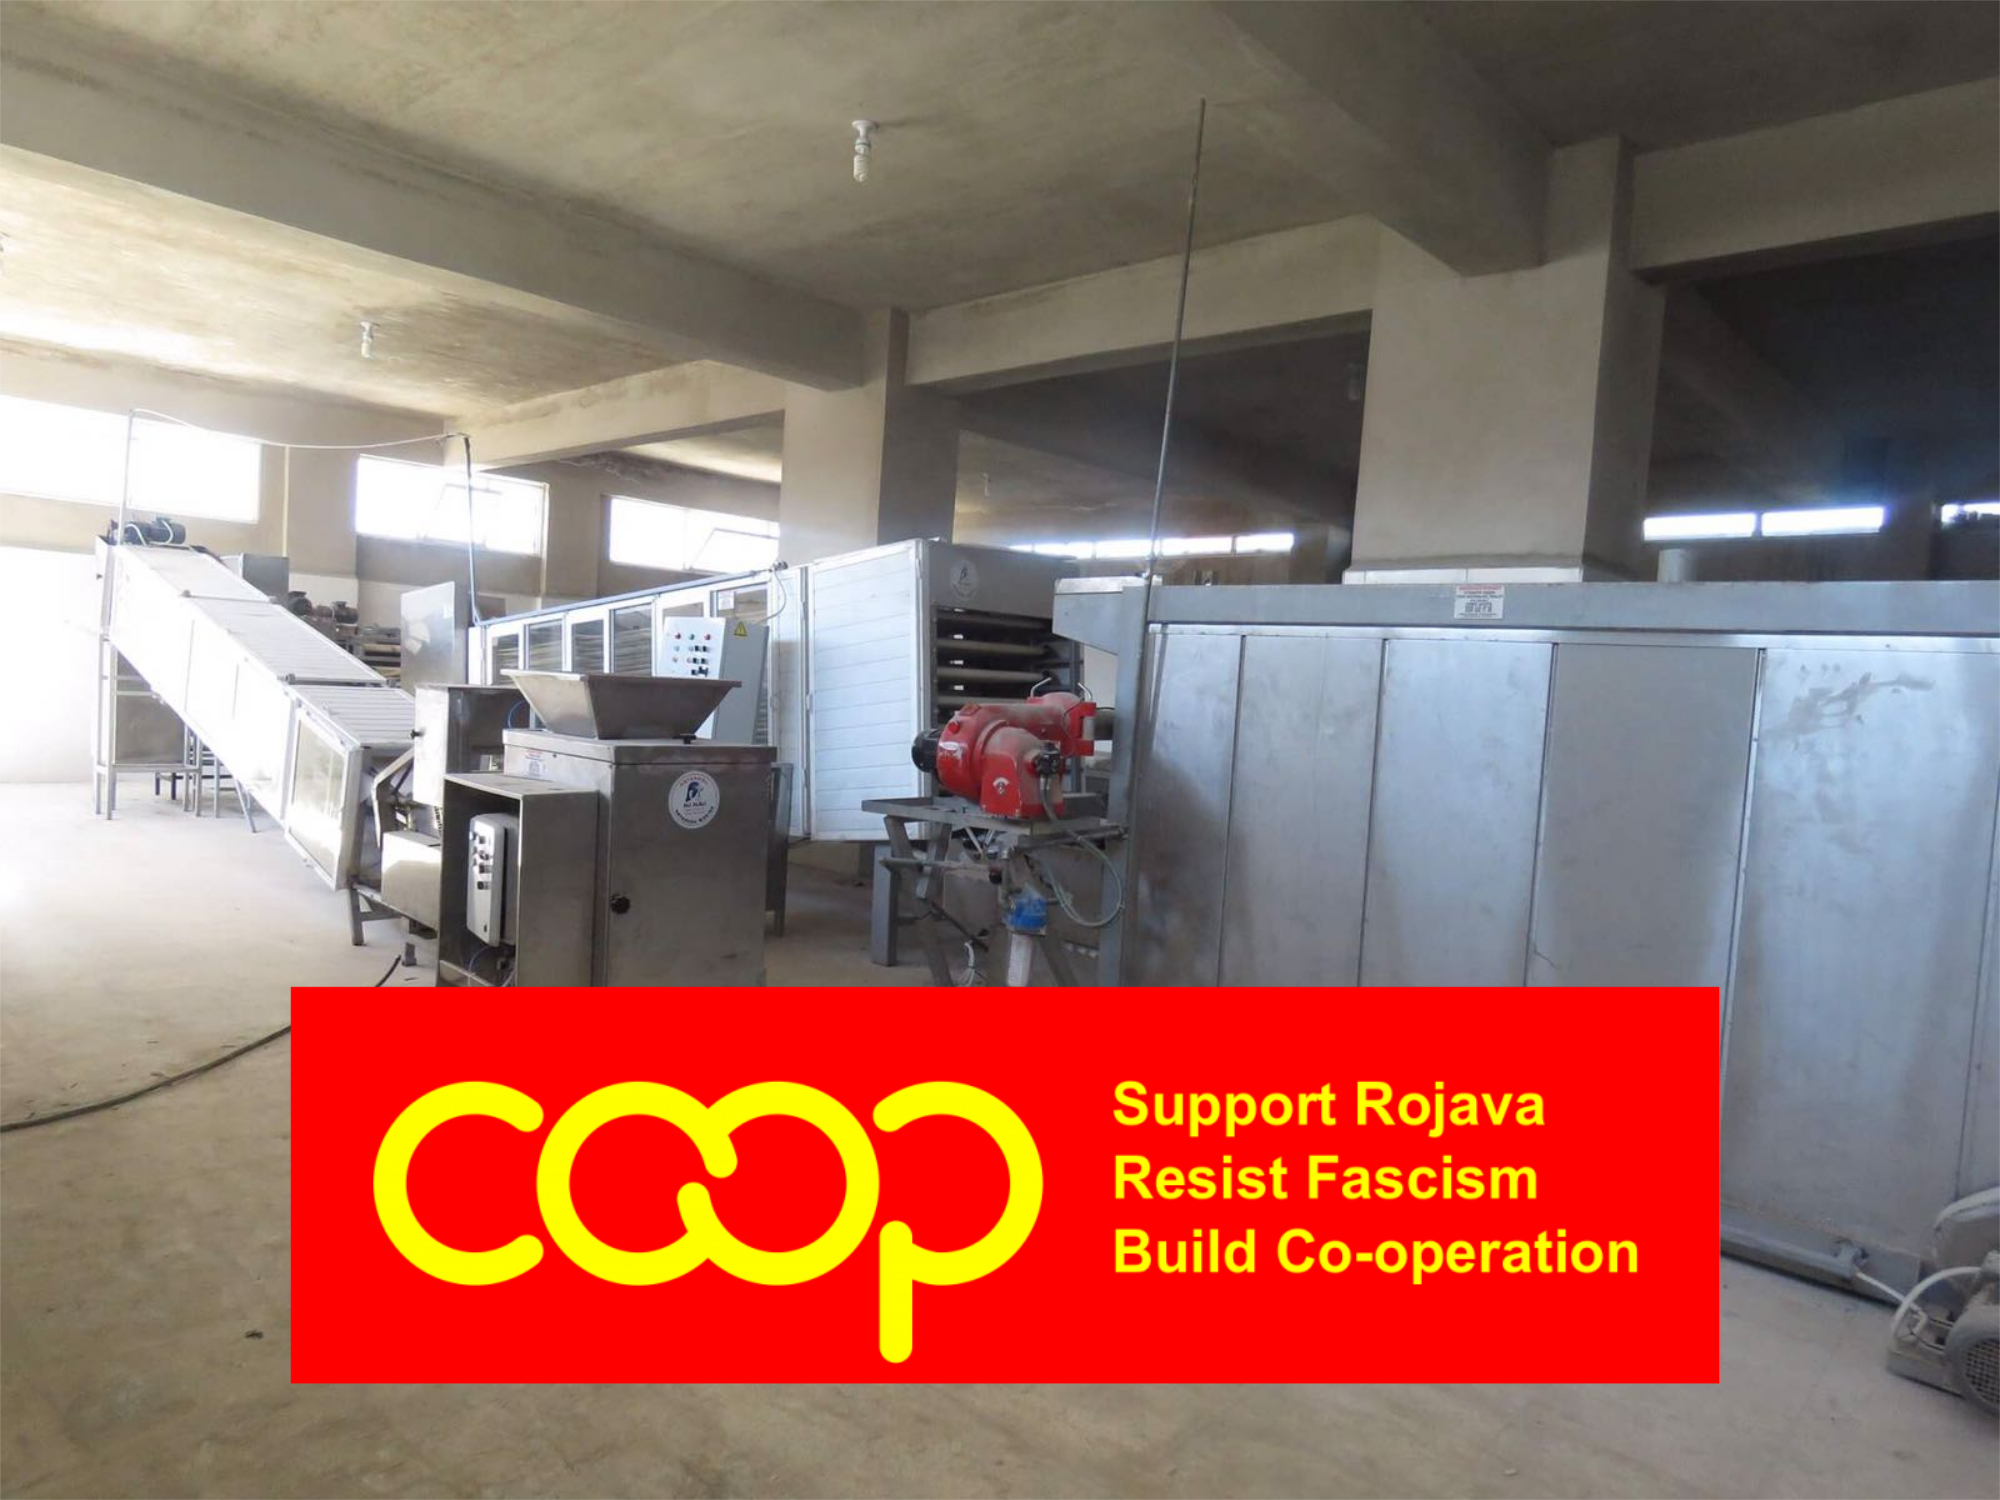 Progress Building Bakery co-op in Rojava